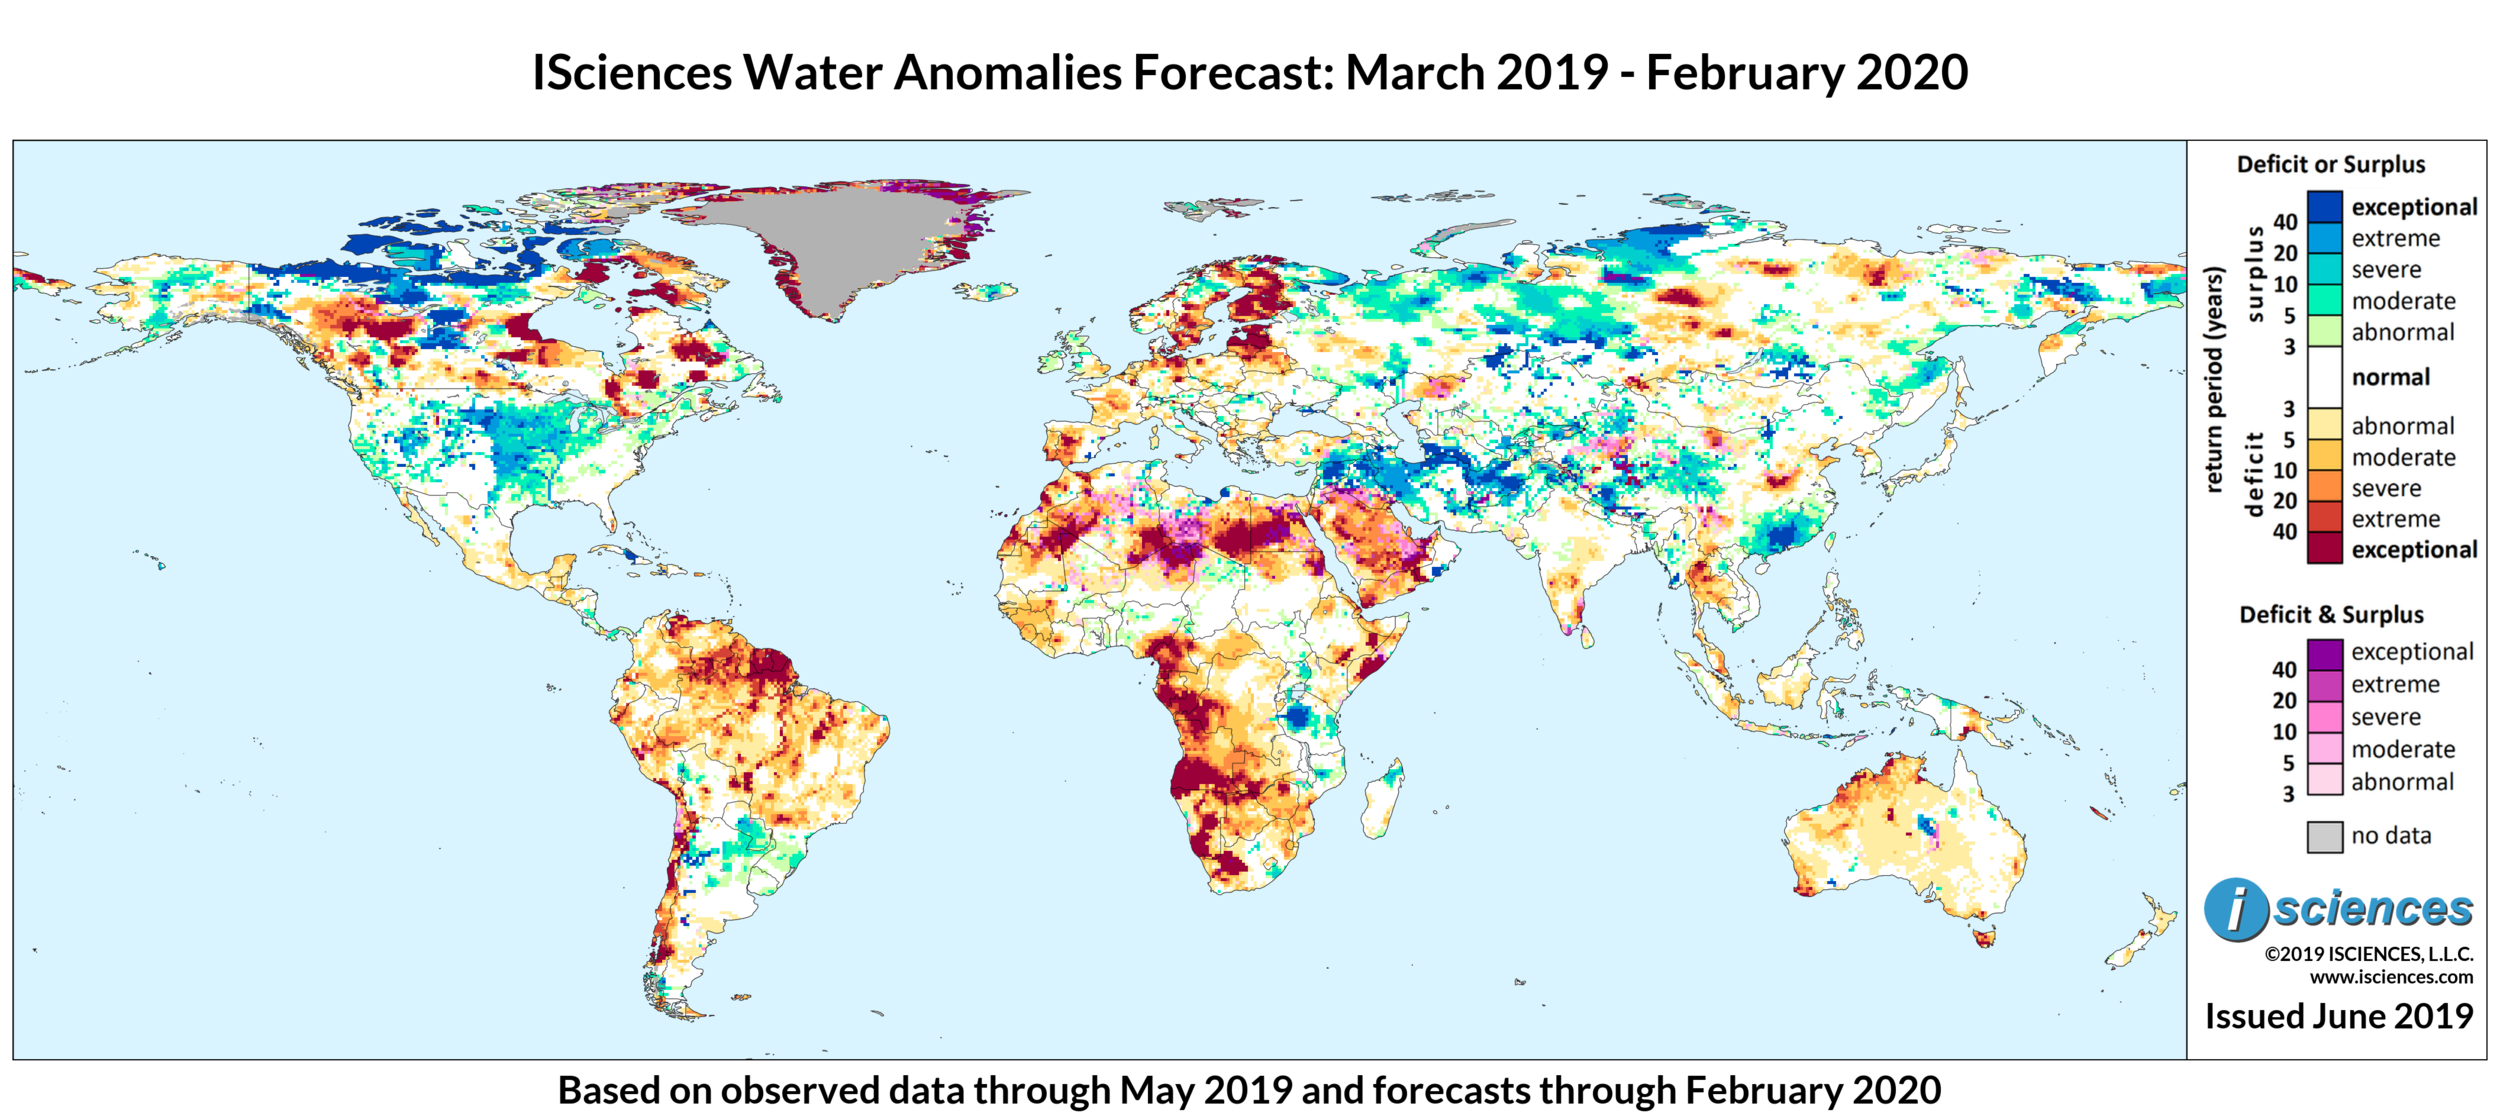 ISciences_Worldwide_Water_Watch_List_2019_June_Worldwide_Composite_Adjusted_201903-202002_12mo_panel.png